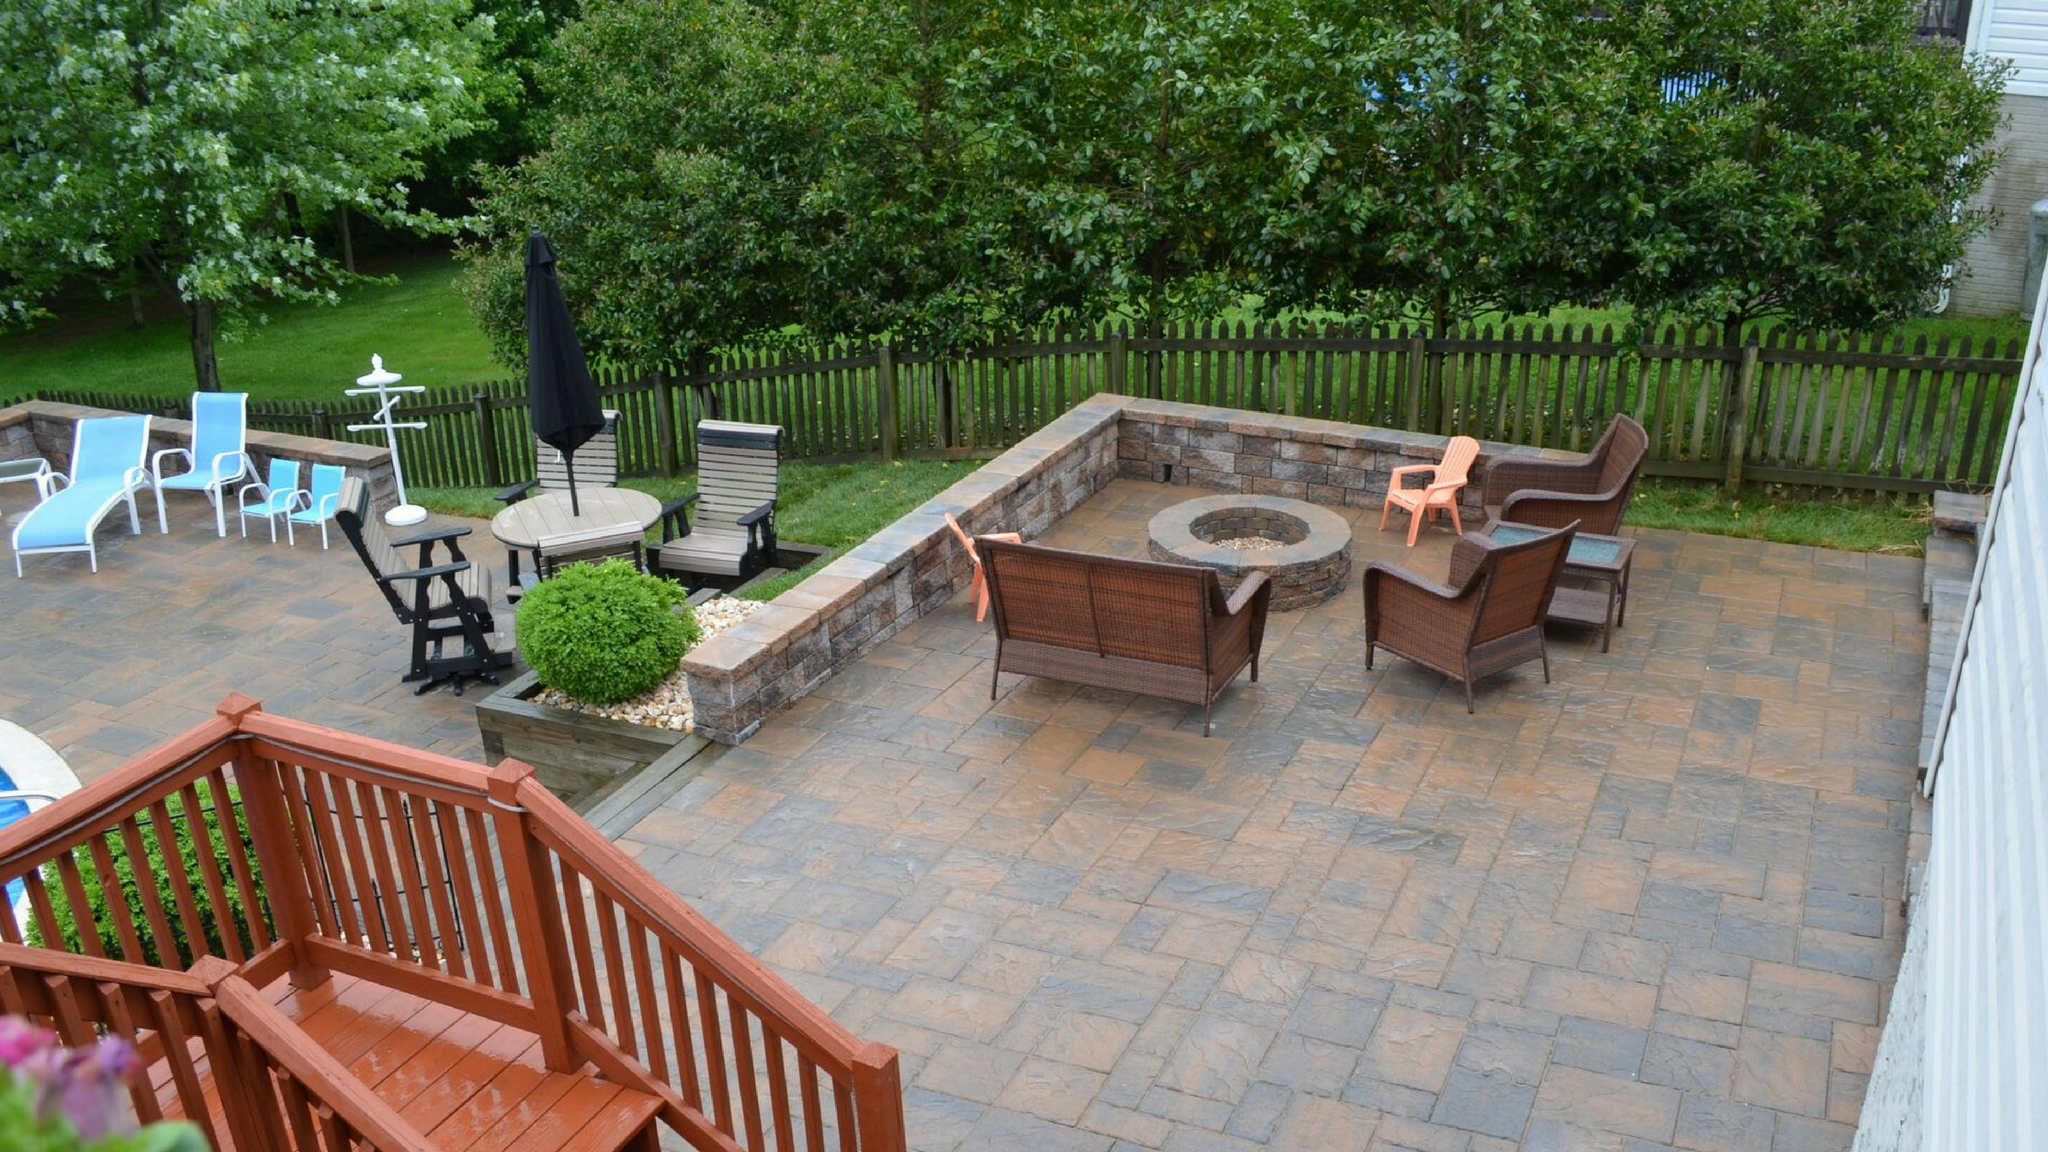 What Patio Materials Are The Best For Your Patio Project?